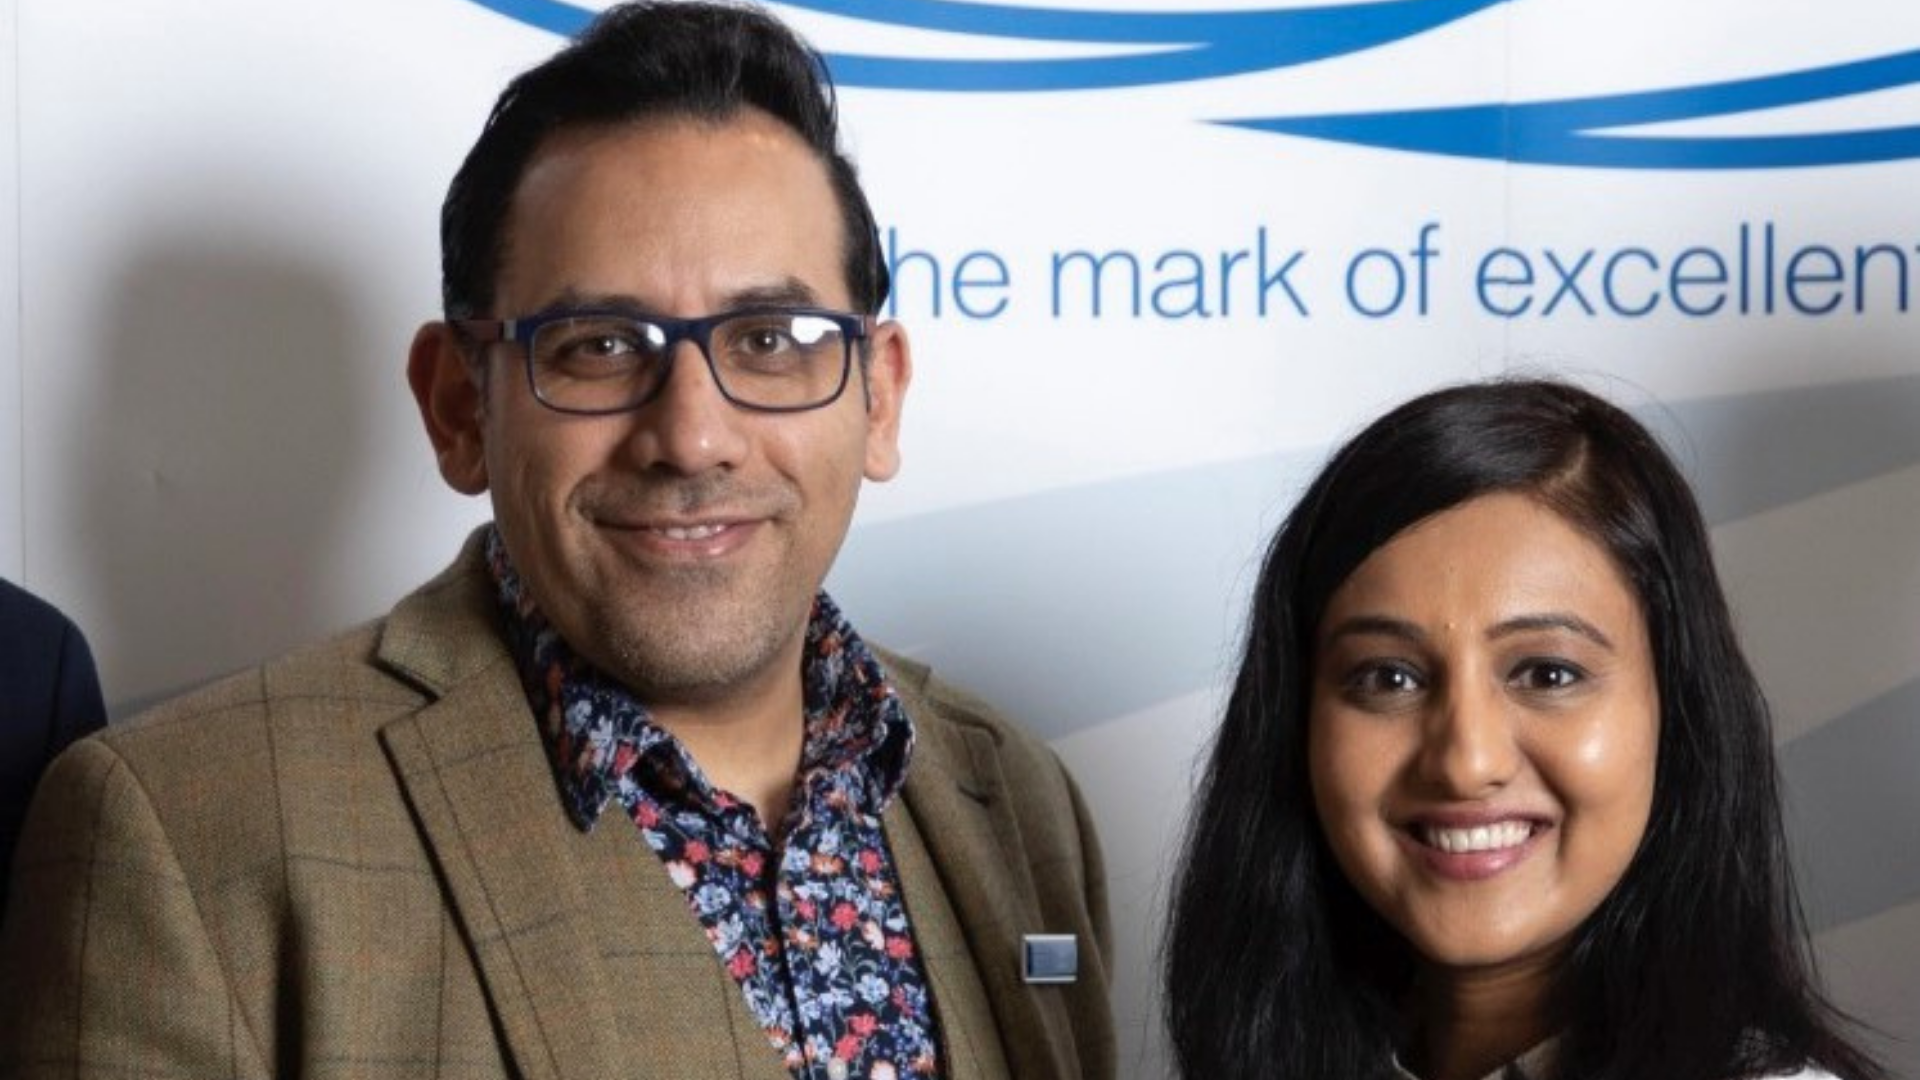 Caremark franchise rated 'Outstanding' after inspection.